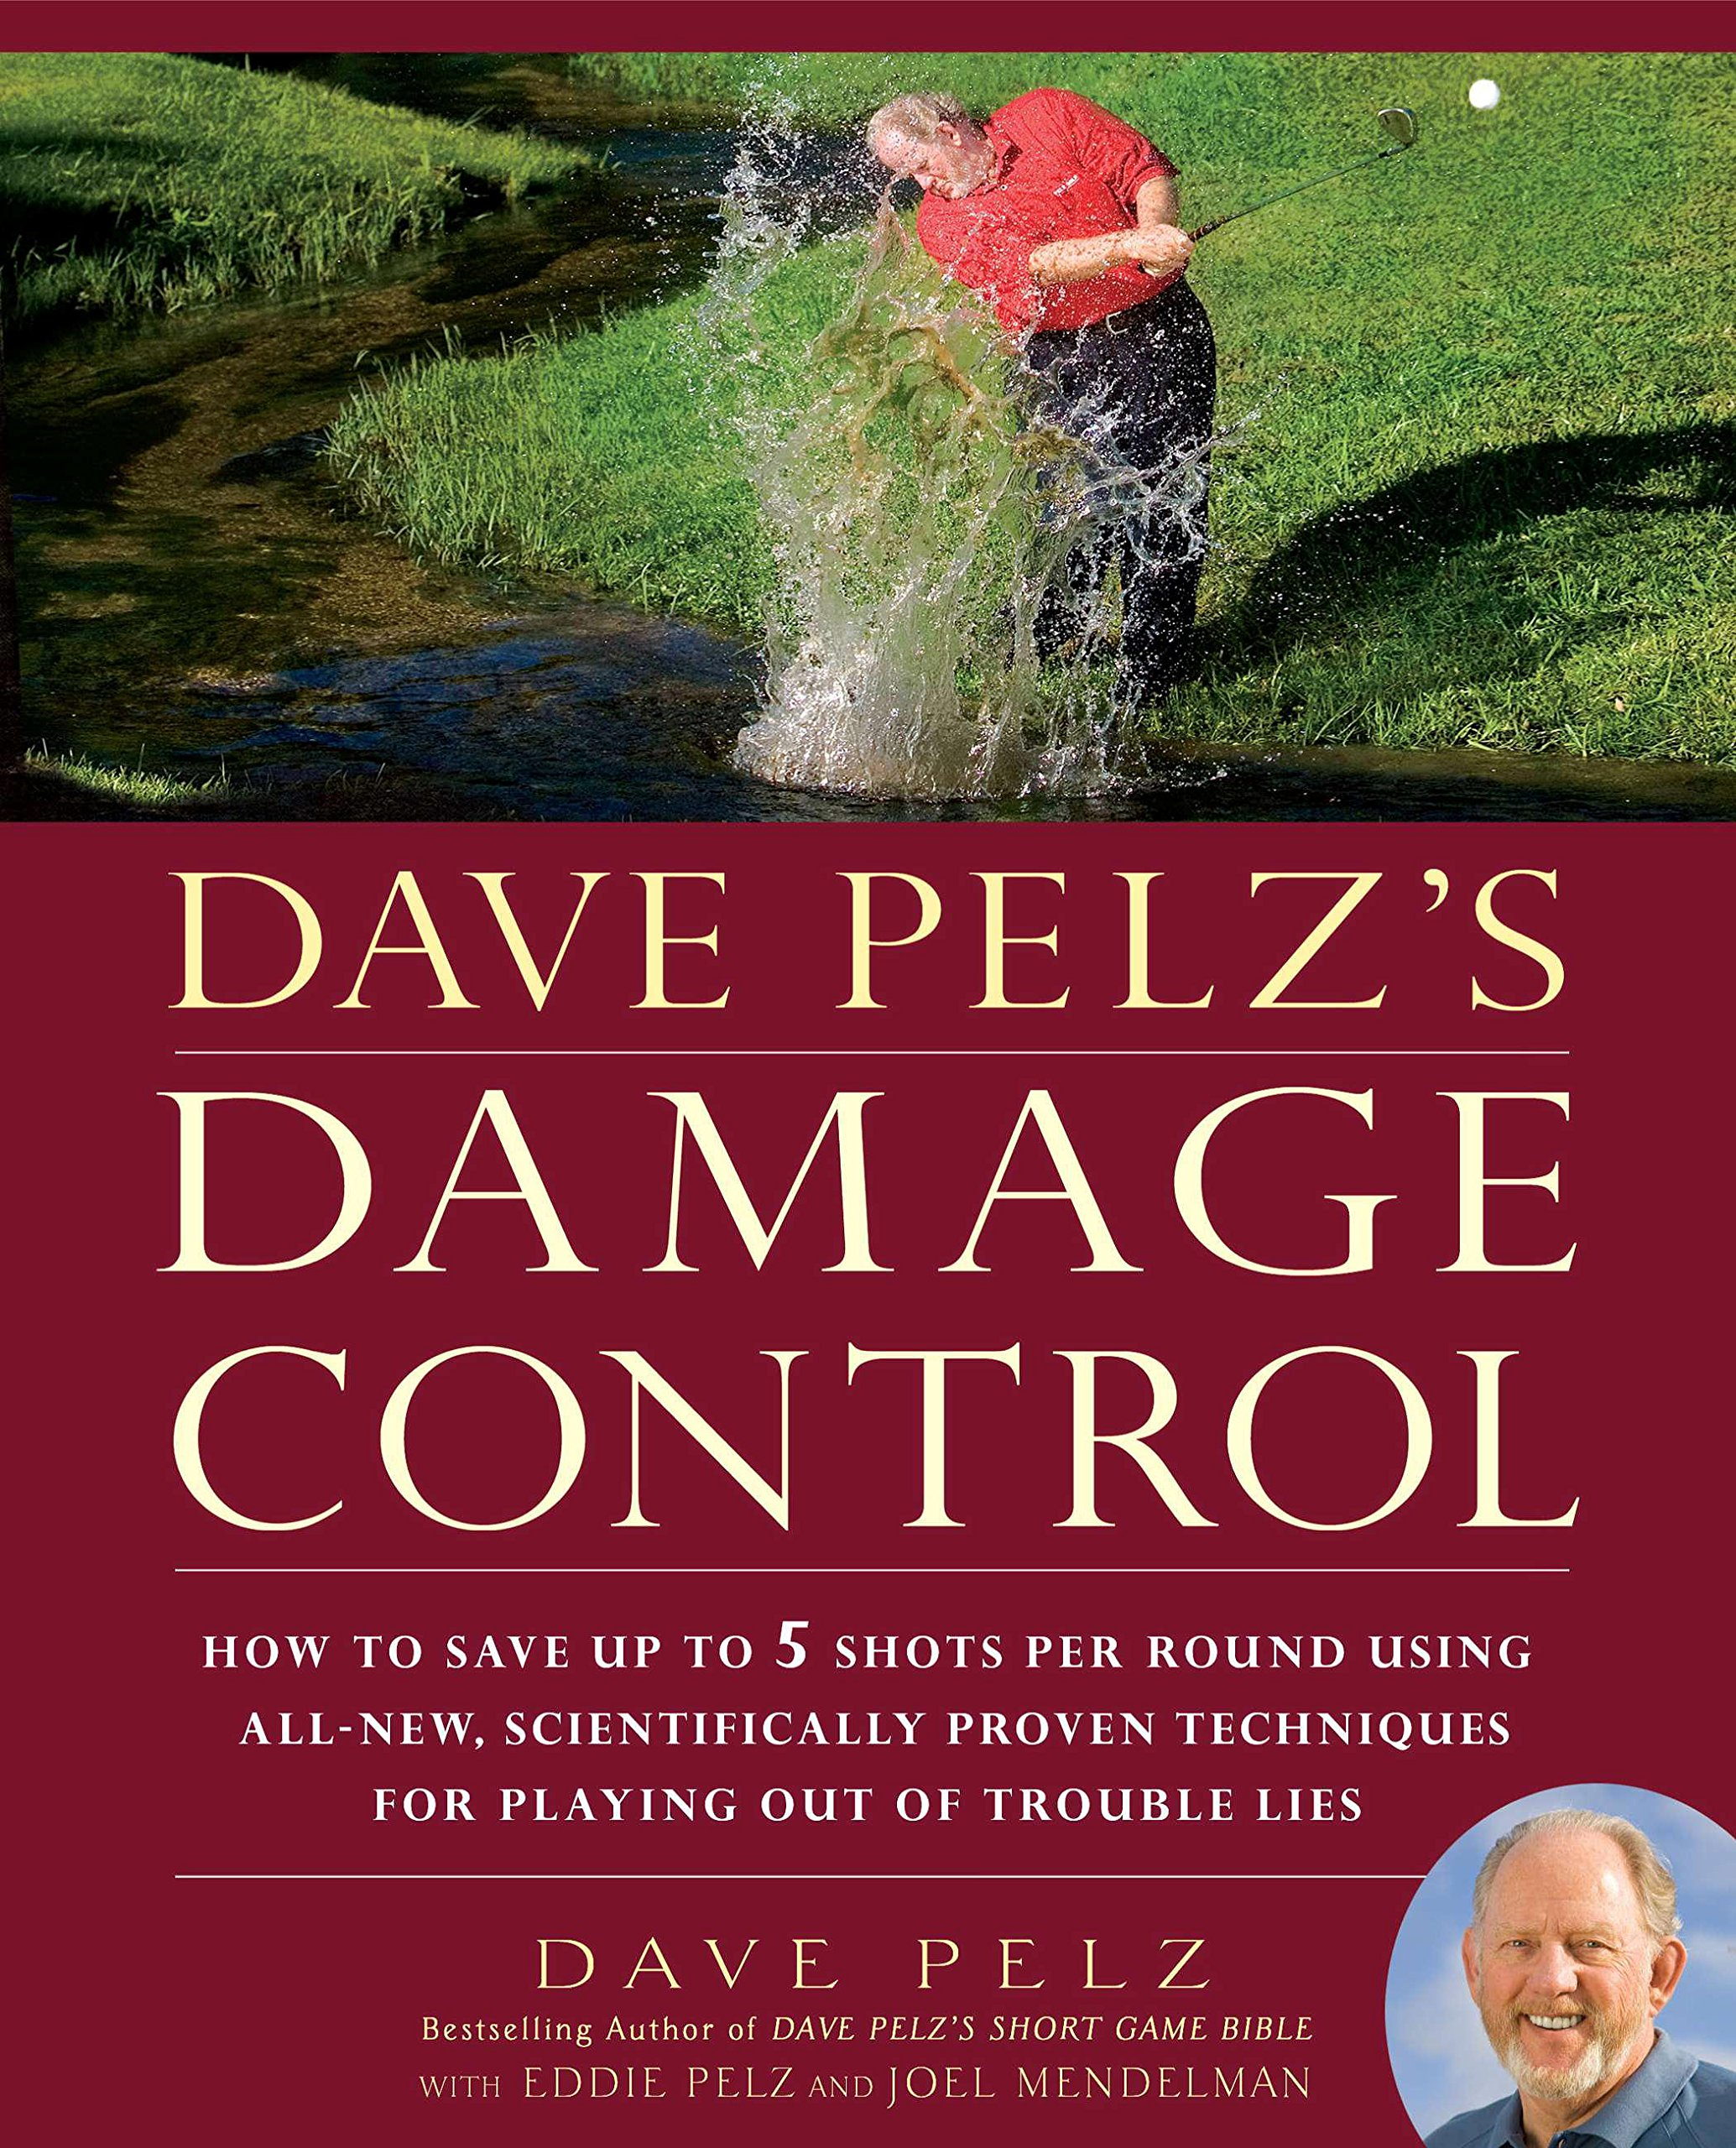 Image OfDave Pelz's Damage Control: How To Save Up To 5 Shots Per Round Using All-New, Scientifically Proven Techniques For Playin...